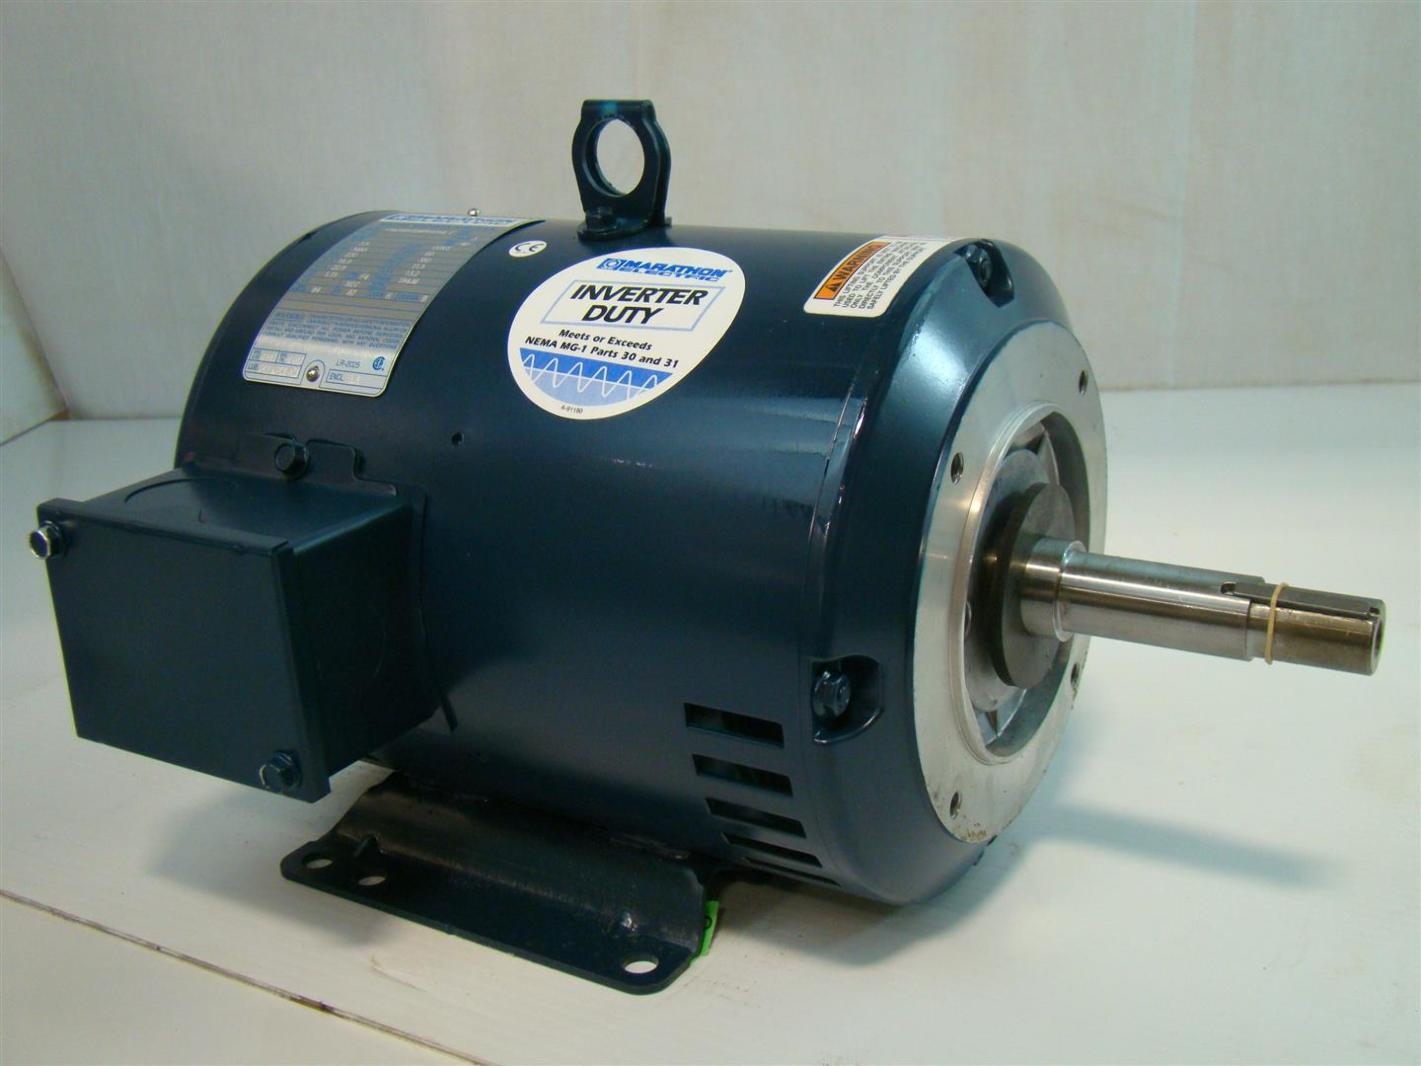 Marathon Electric Inverter Duty Electric Motor